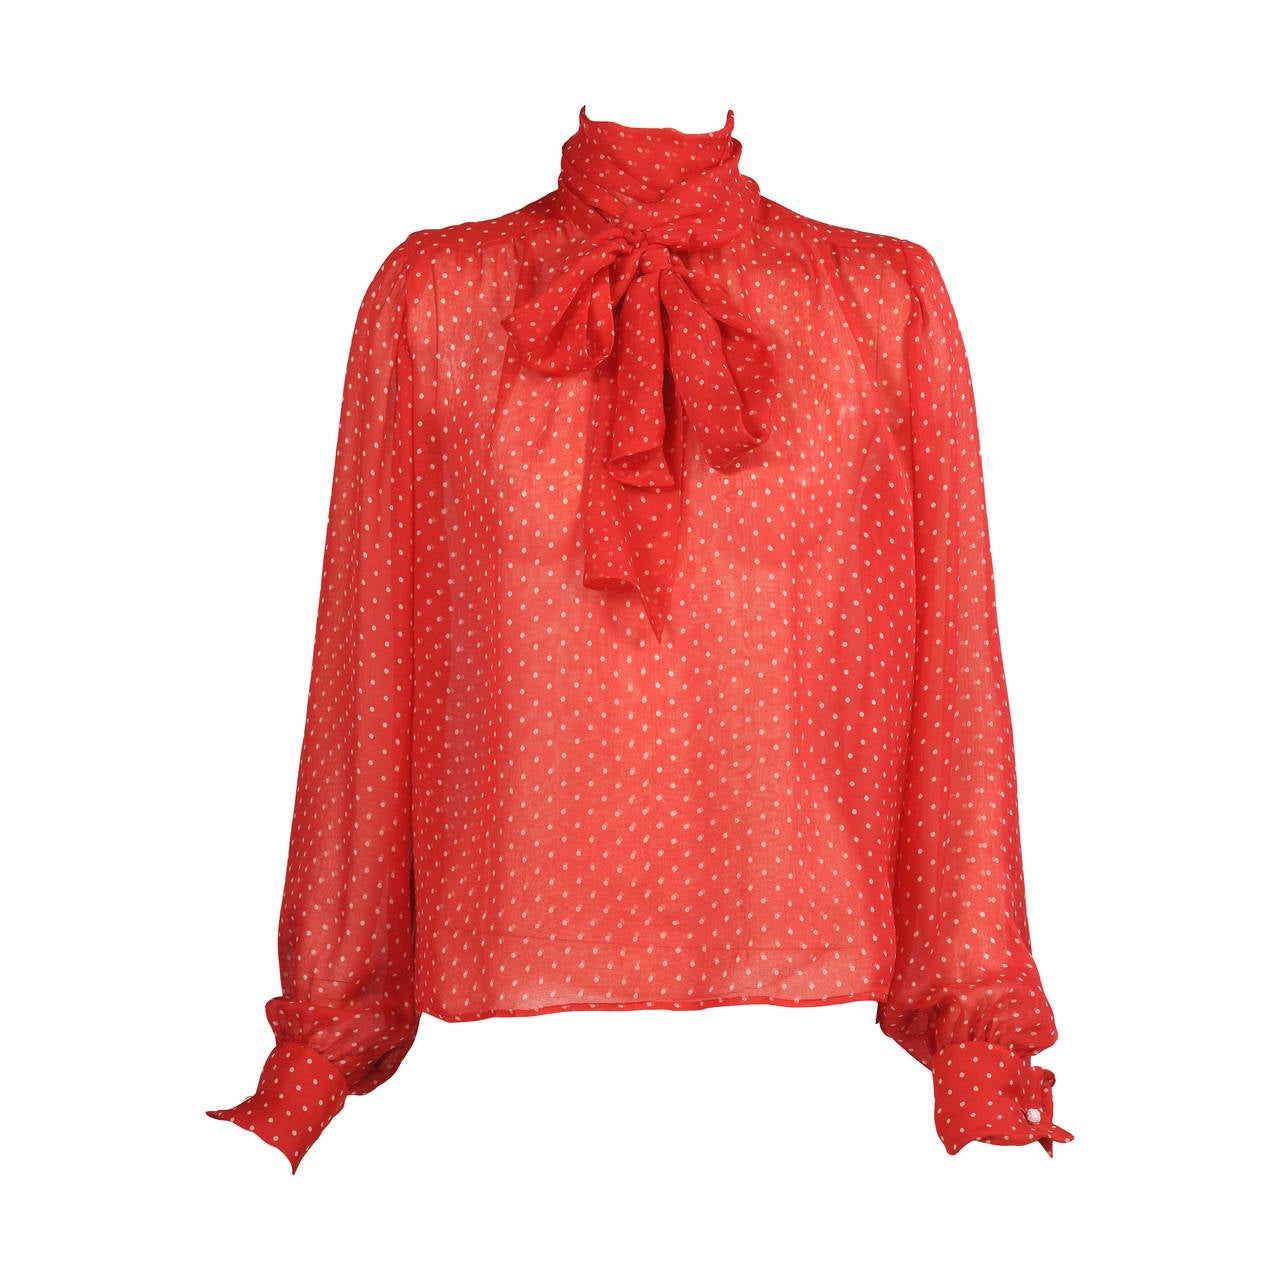 Yves Saint Laurent Polka Dot Chiffon Haute Couture Pussy Cat Bow Blouse 1